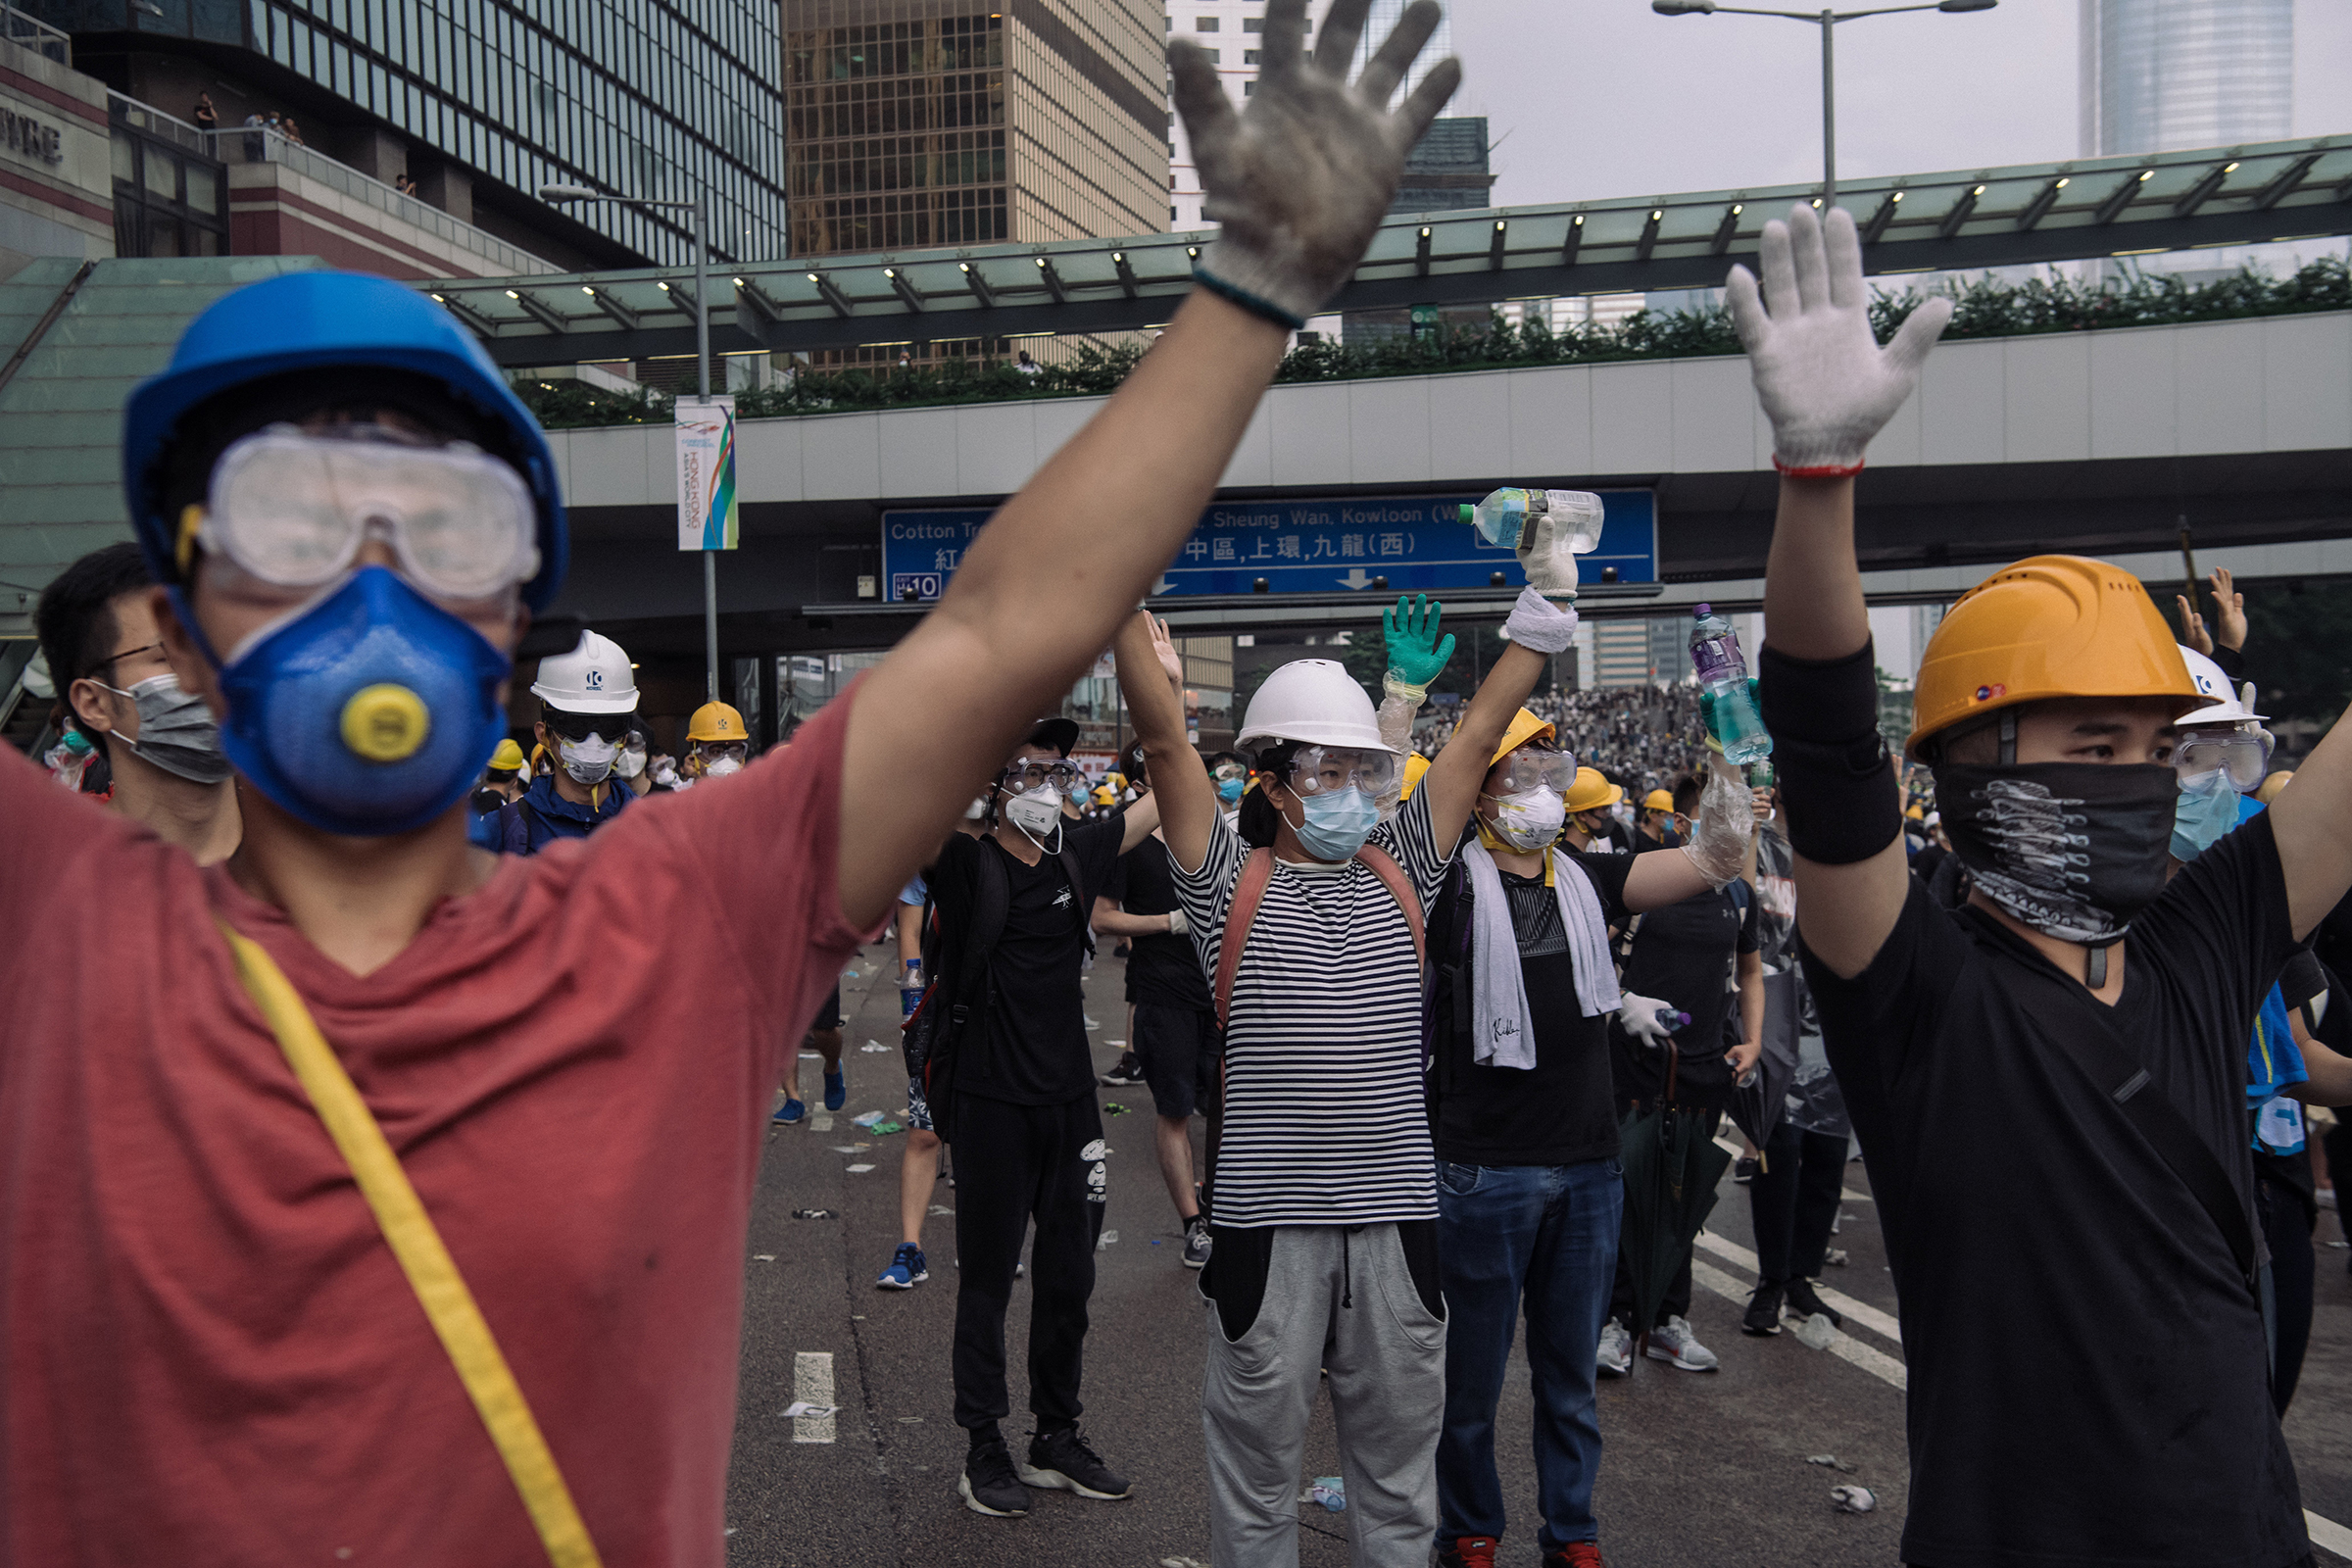 Protesters raise their hands during a protest on June 12.